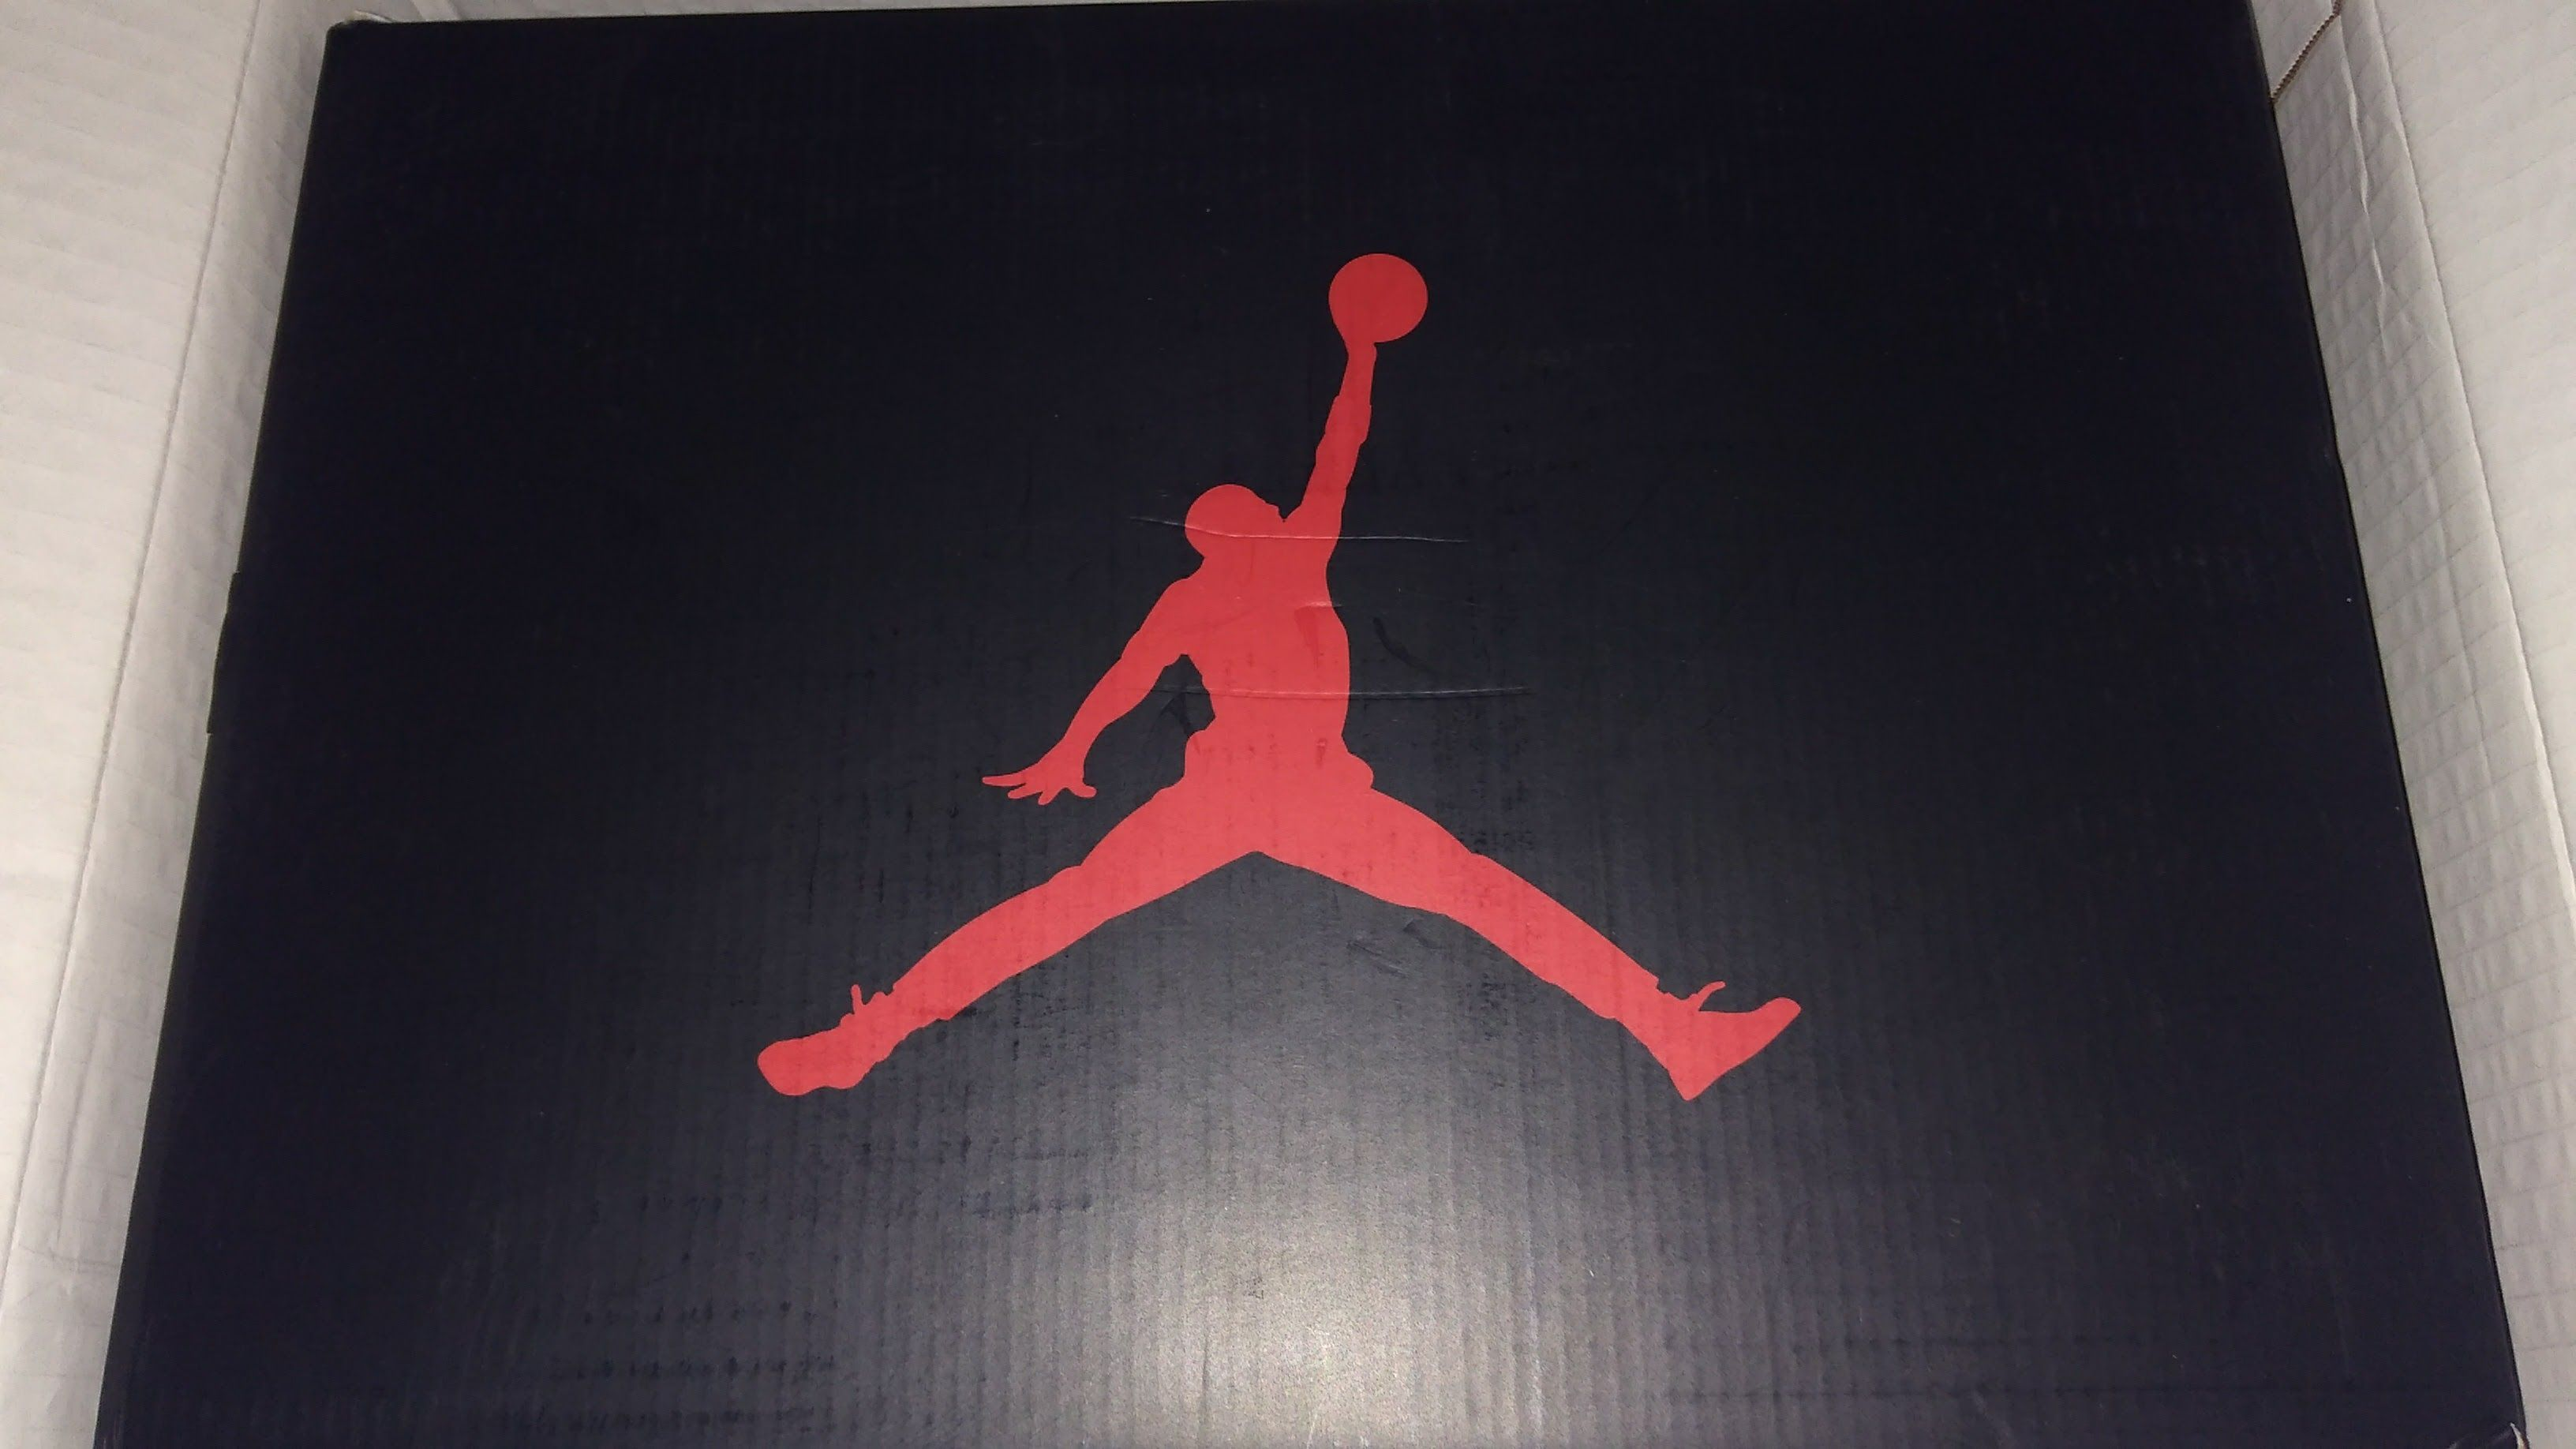 #NikeRetro6 #Jordanalternate #sneakerbox from #Nike - https://drewrynewsnetwork.com/forum/shoe-reviews/sneaker-reviews